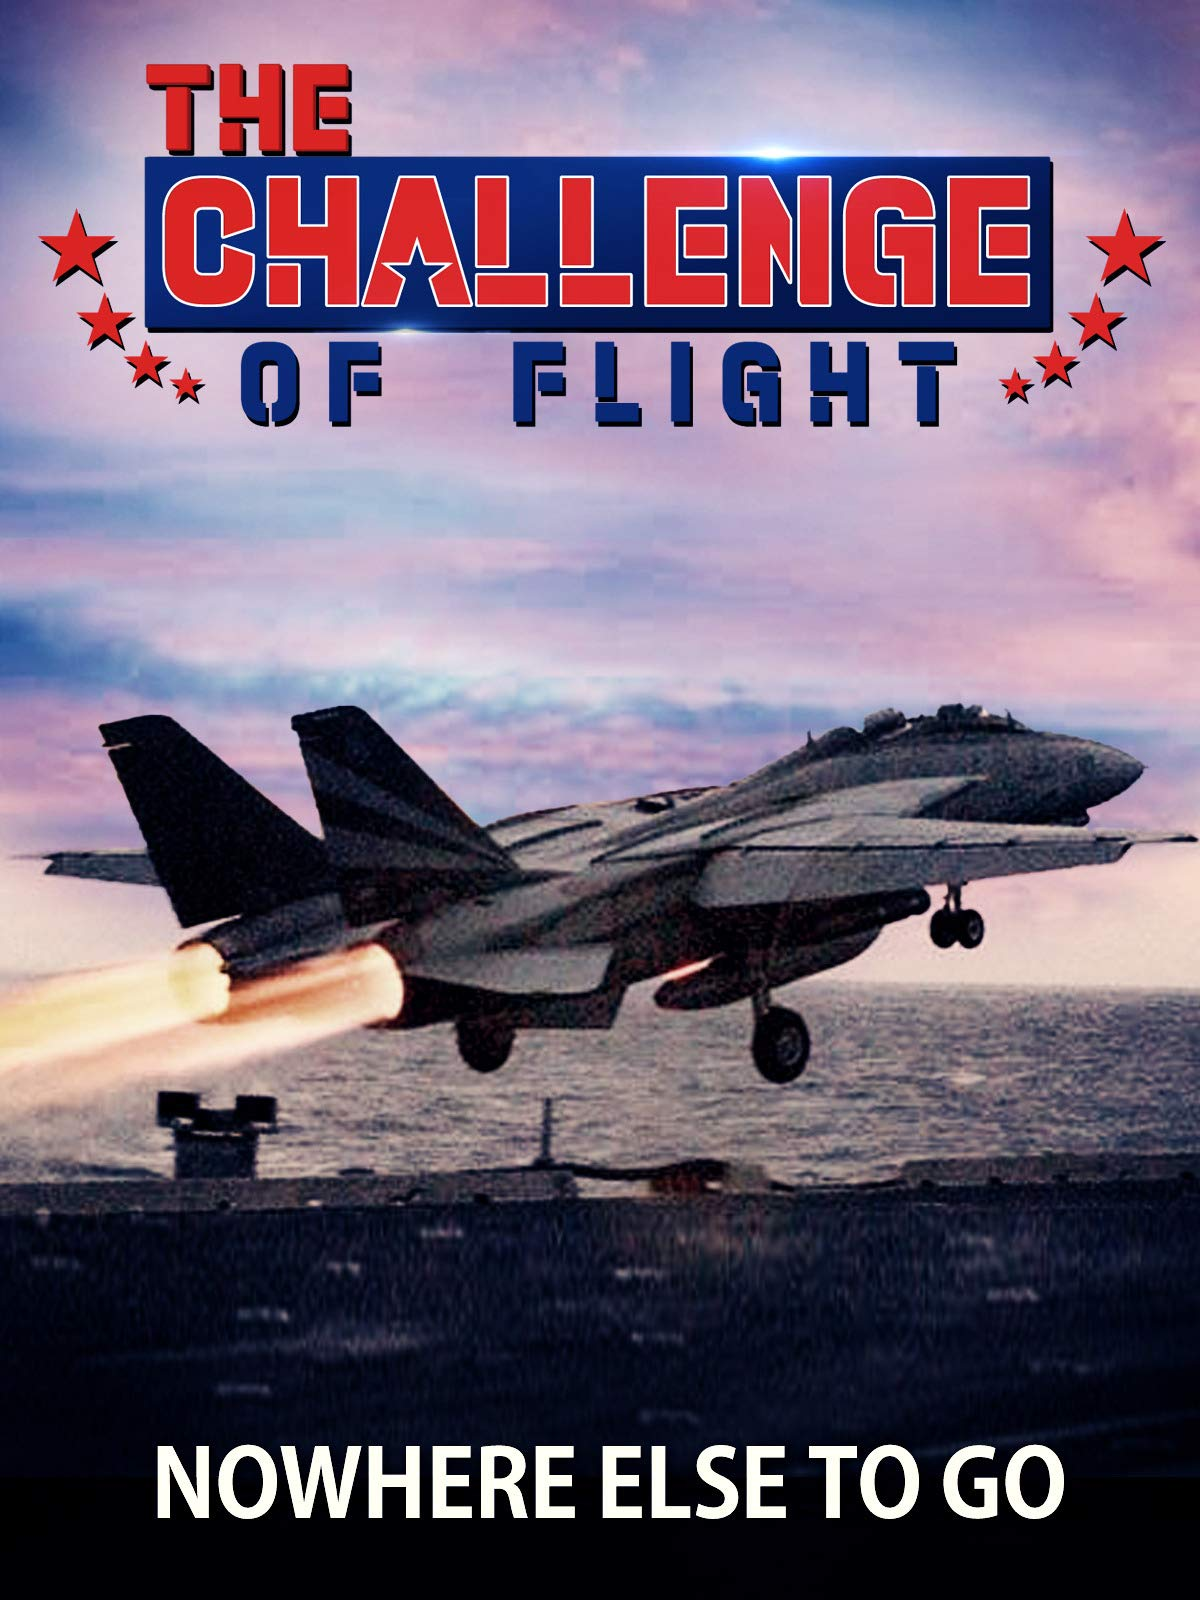 The Challenge of Flight - Nowhere Else To Go